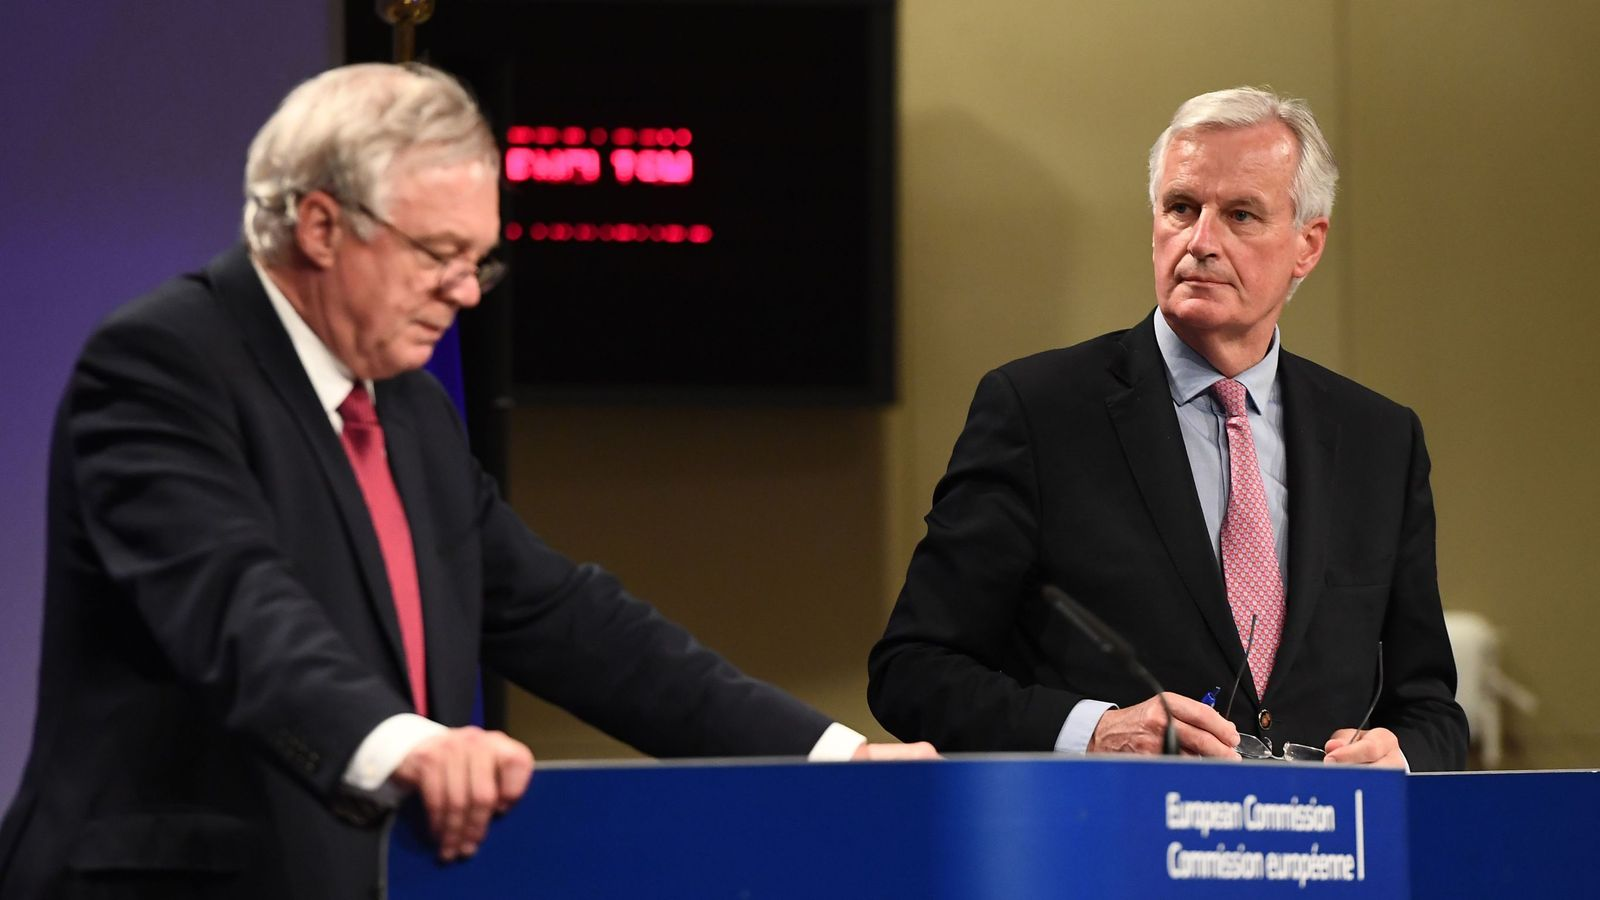 David Davis and Michel Barnier at their corner news discussion after apparently formidable talks